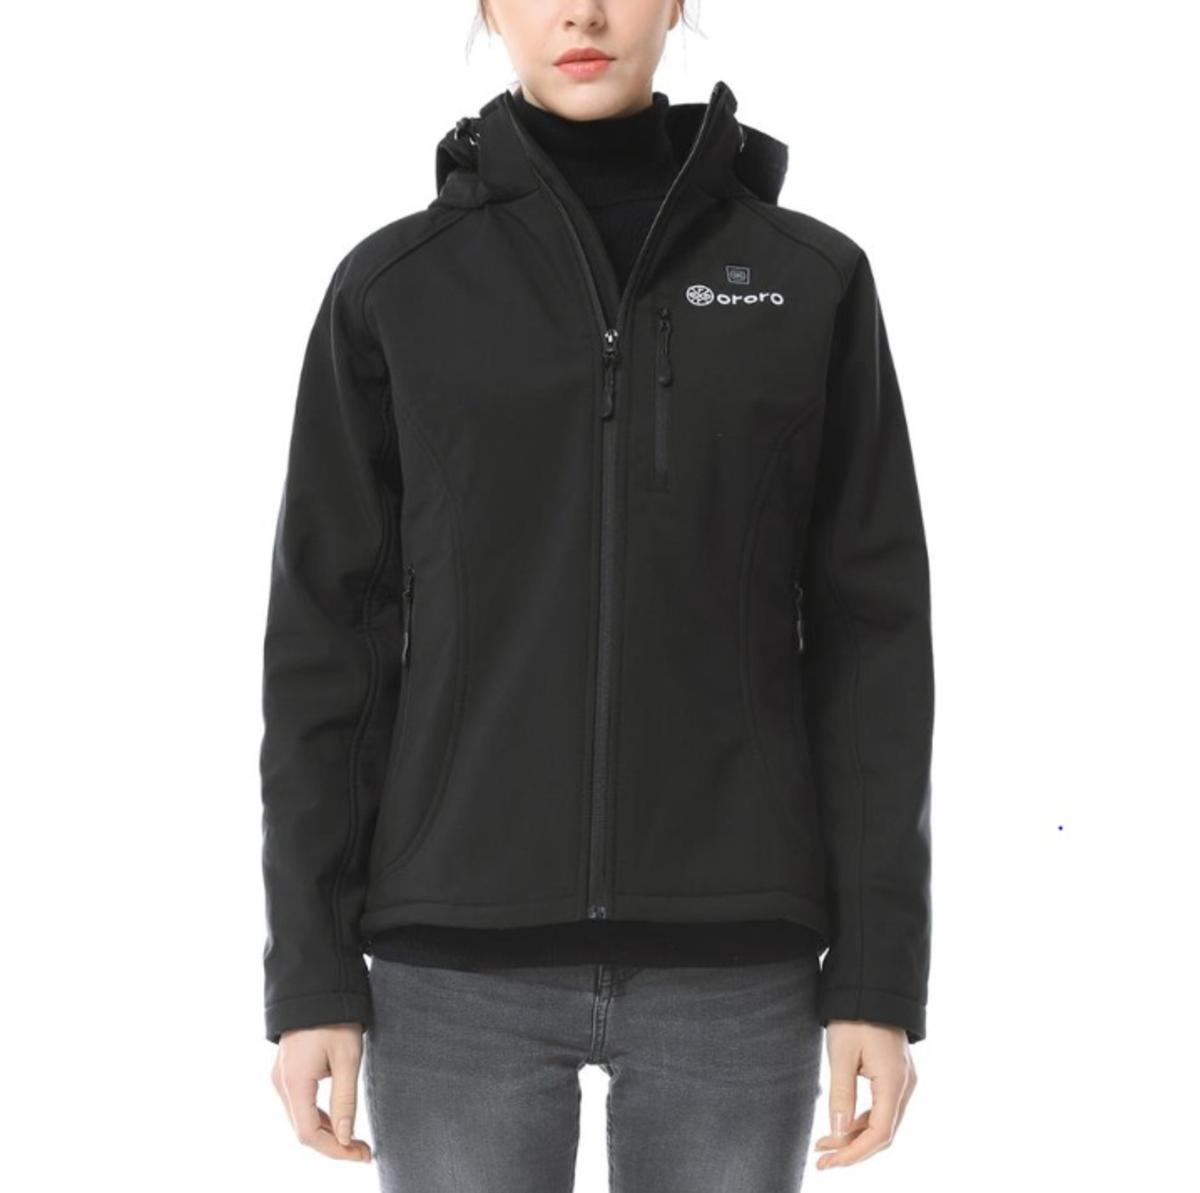 ORORO Women's Slim Fit Heated Jacket